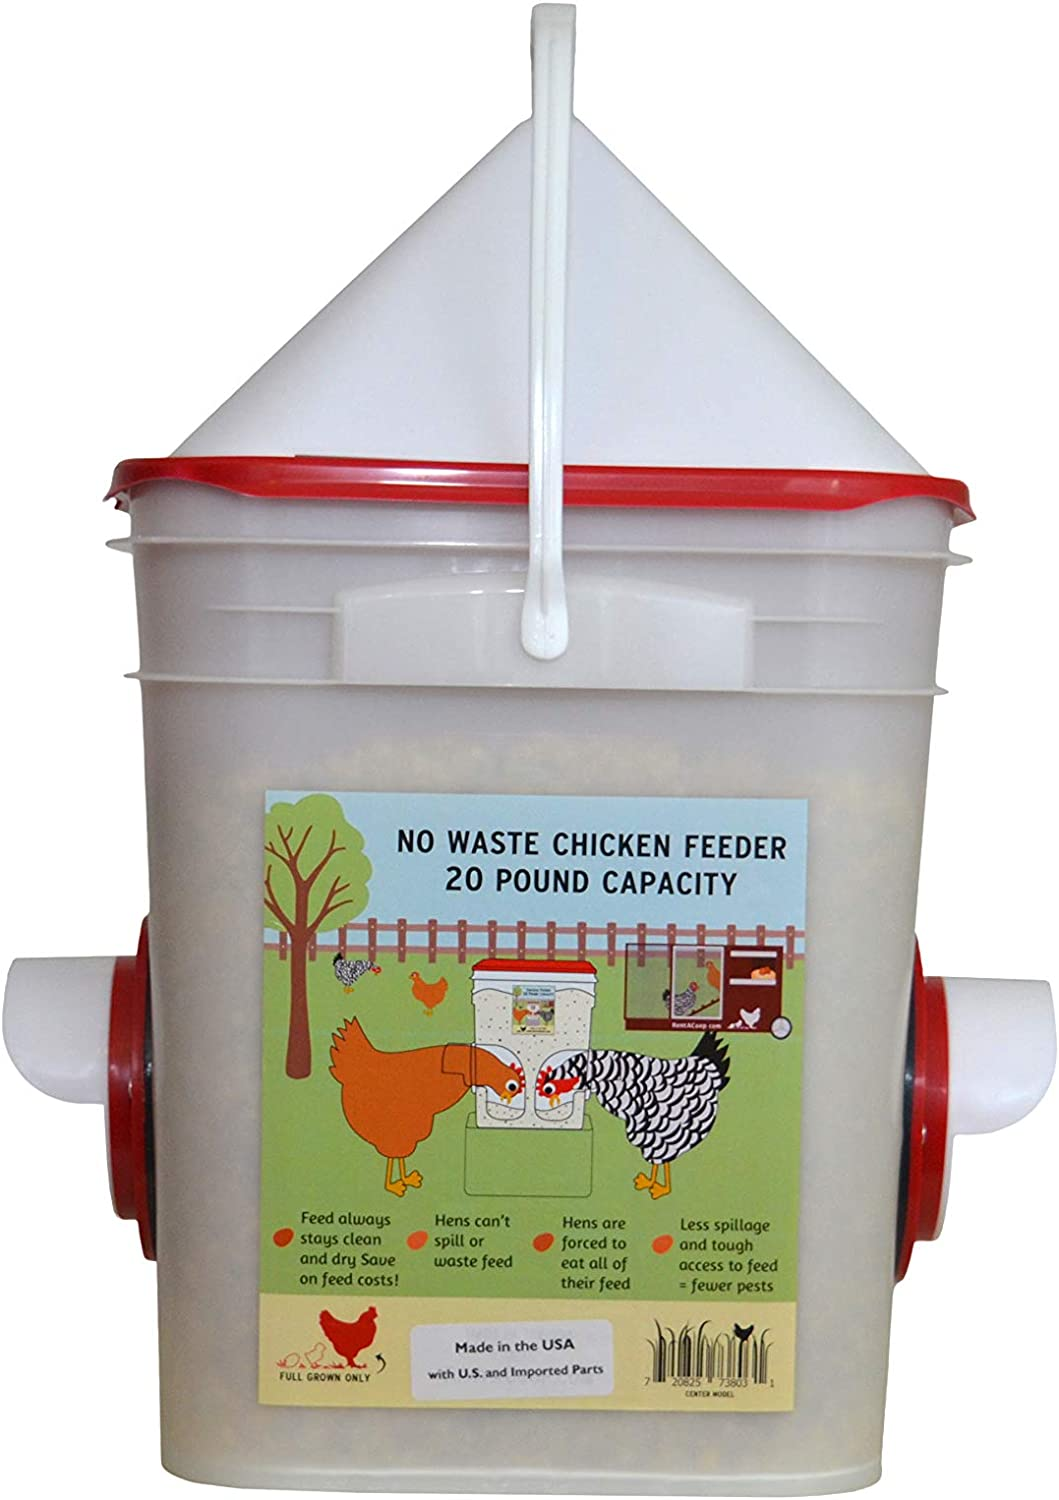 Chicken Feeder-Holds 20 Pounds-Pellets-Crumbles-Grain in Bucket - for 21st Century Chicken Owners - Inside or Outside of Coop - Use with Nipple Waterer